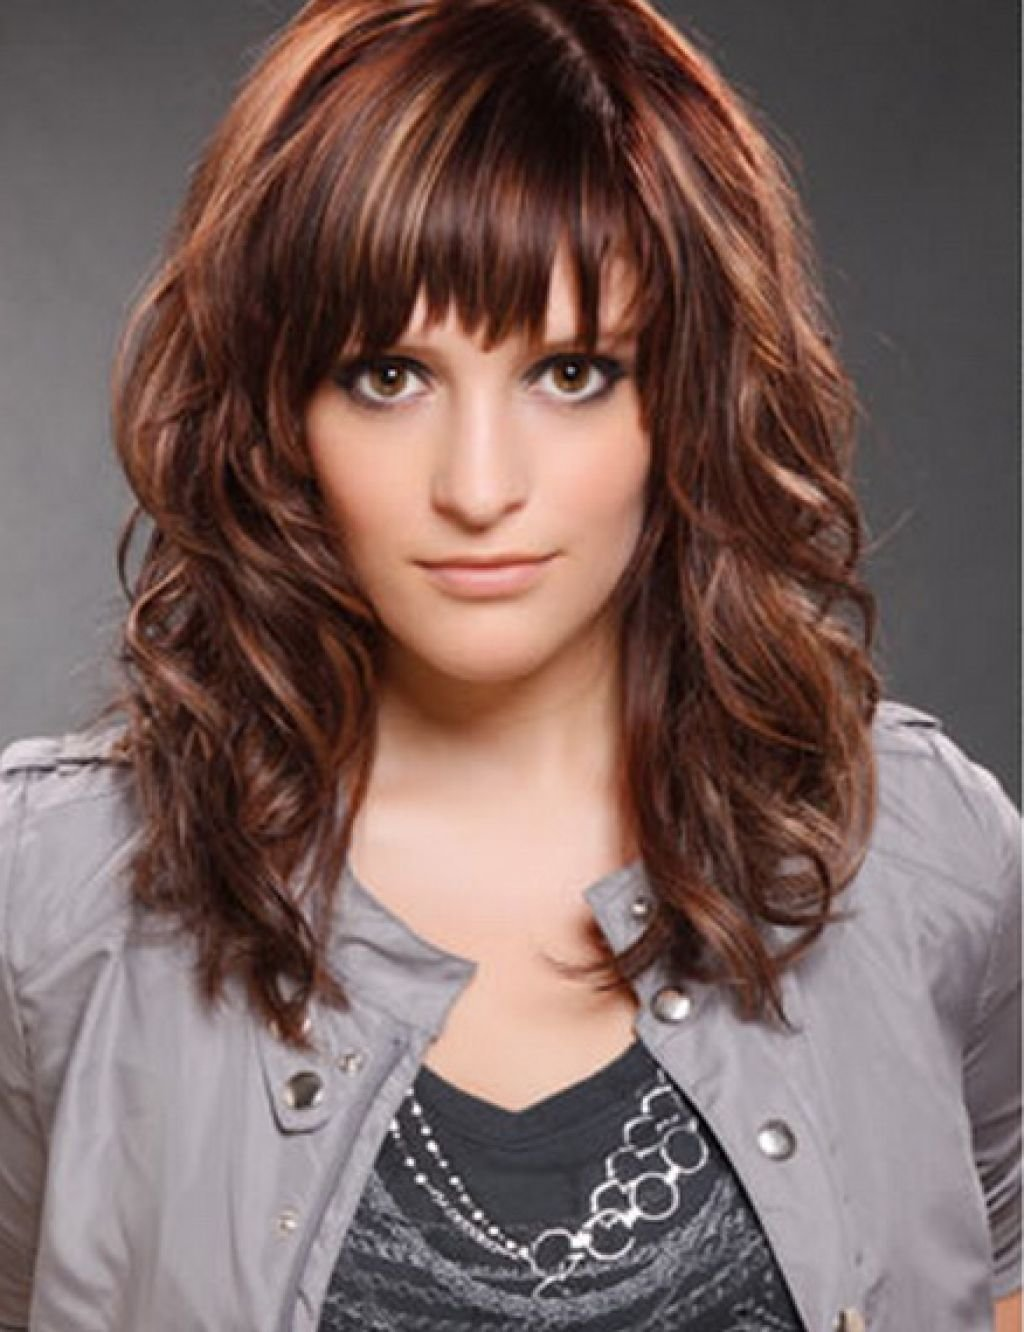 The Best Cute Hairstyles For Medium Curly Hair With Side Bangs Hairstyle For Women Man Pictures